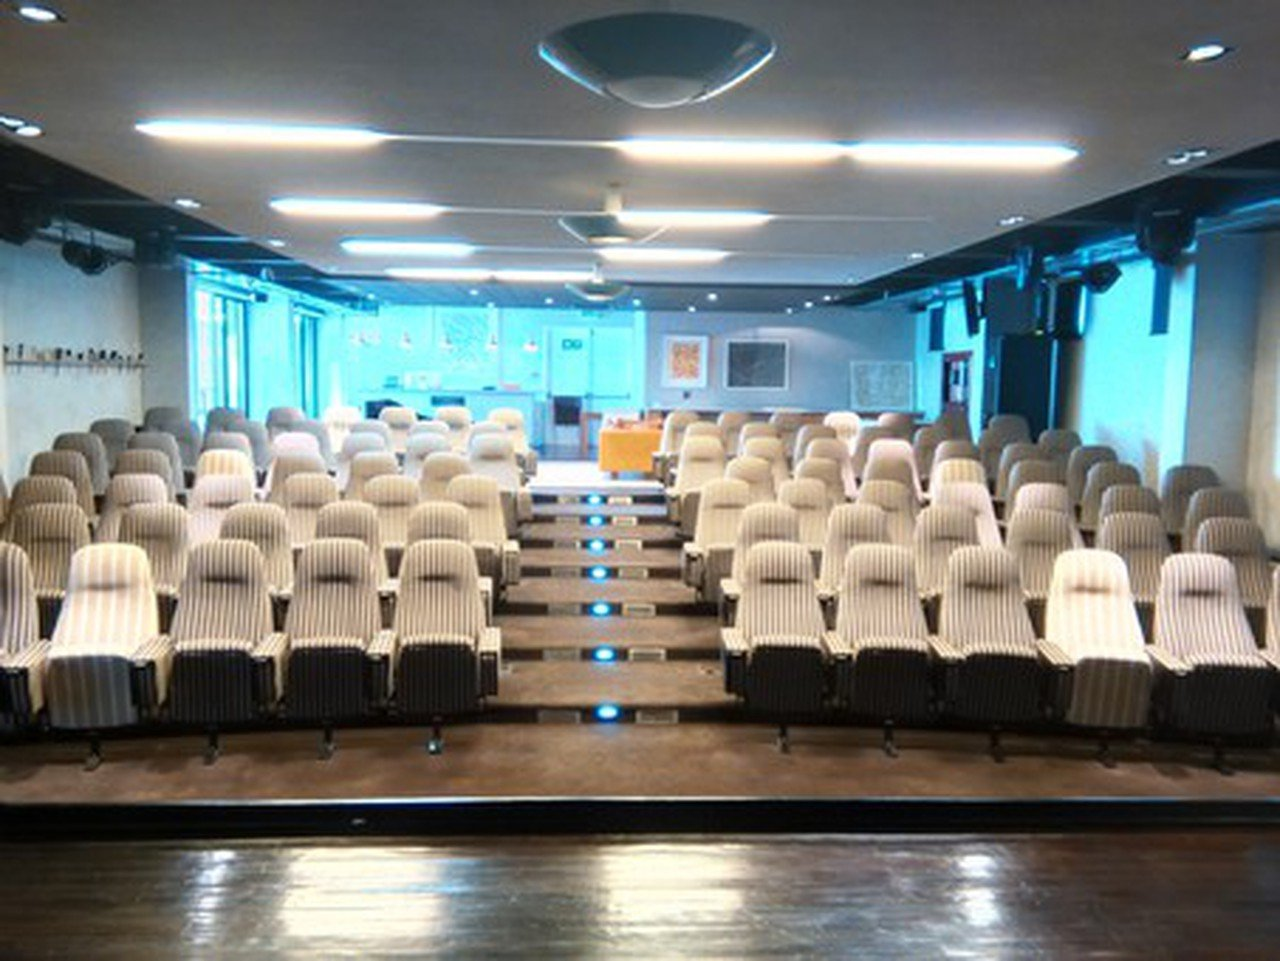 Kapstadt seminar rooms Auditorium Ideas Cartel - Auditorium image 0